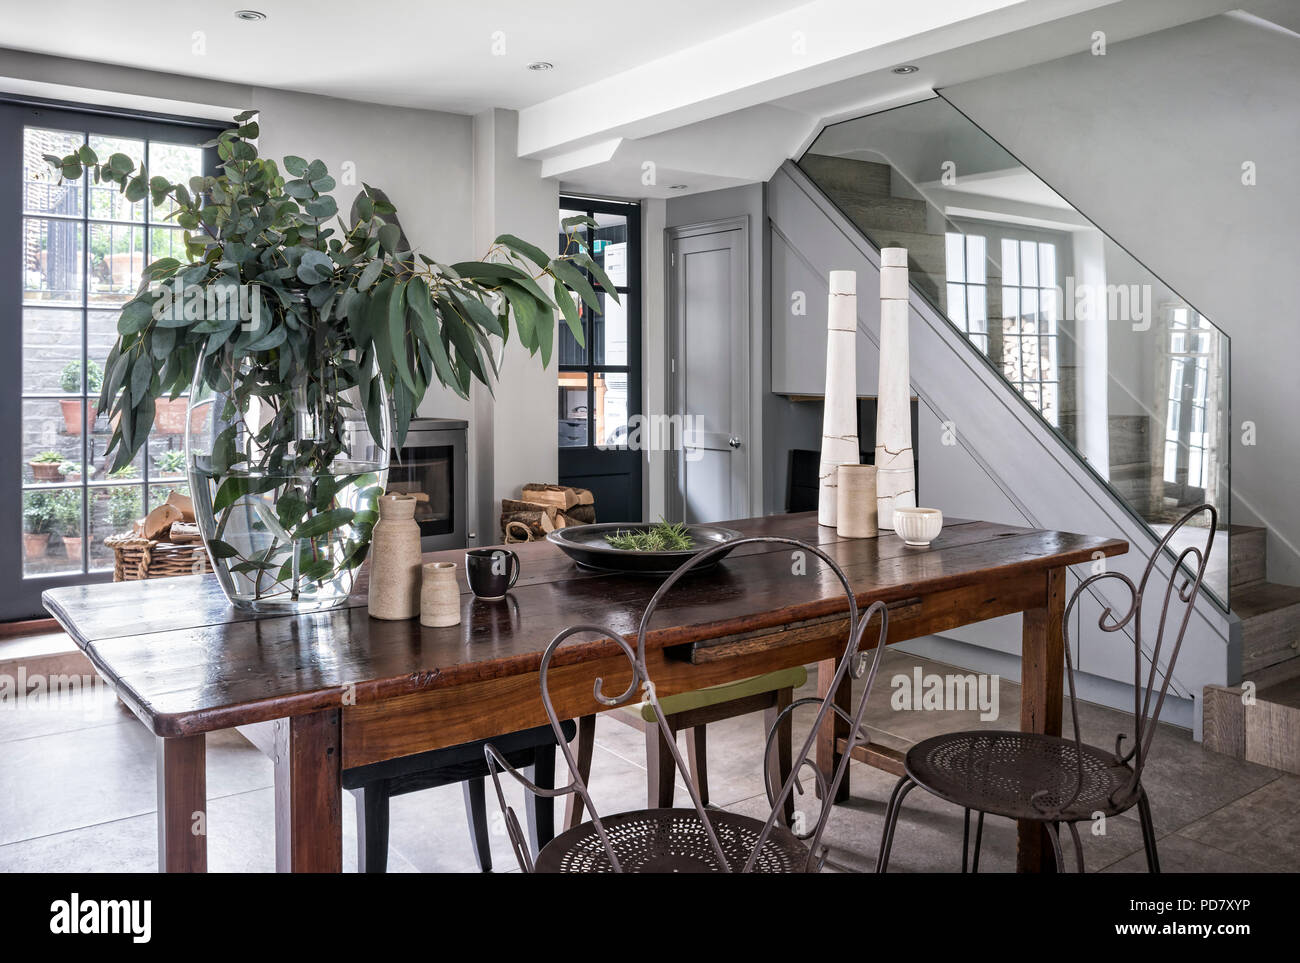 Vintage metal chairs and a pair of Phillipe Hurel stools around wooden table in chic kitchen with wood-burning stove - Stock Image